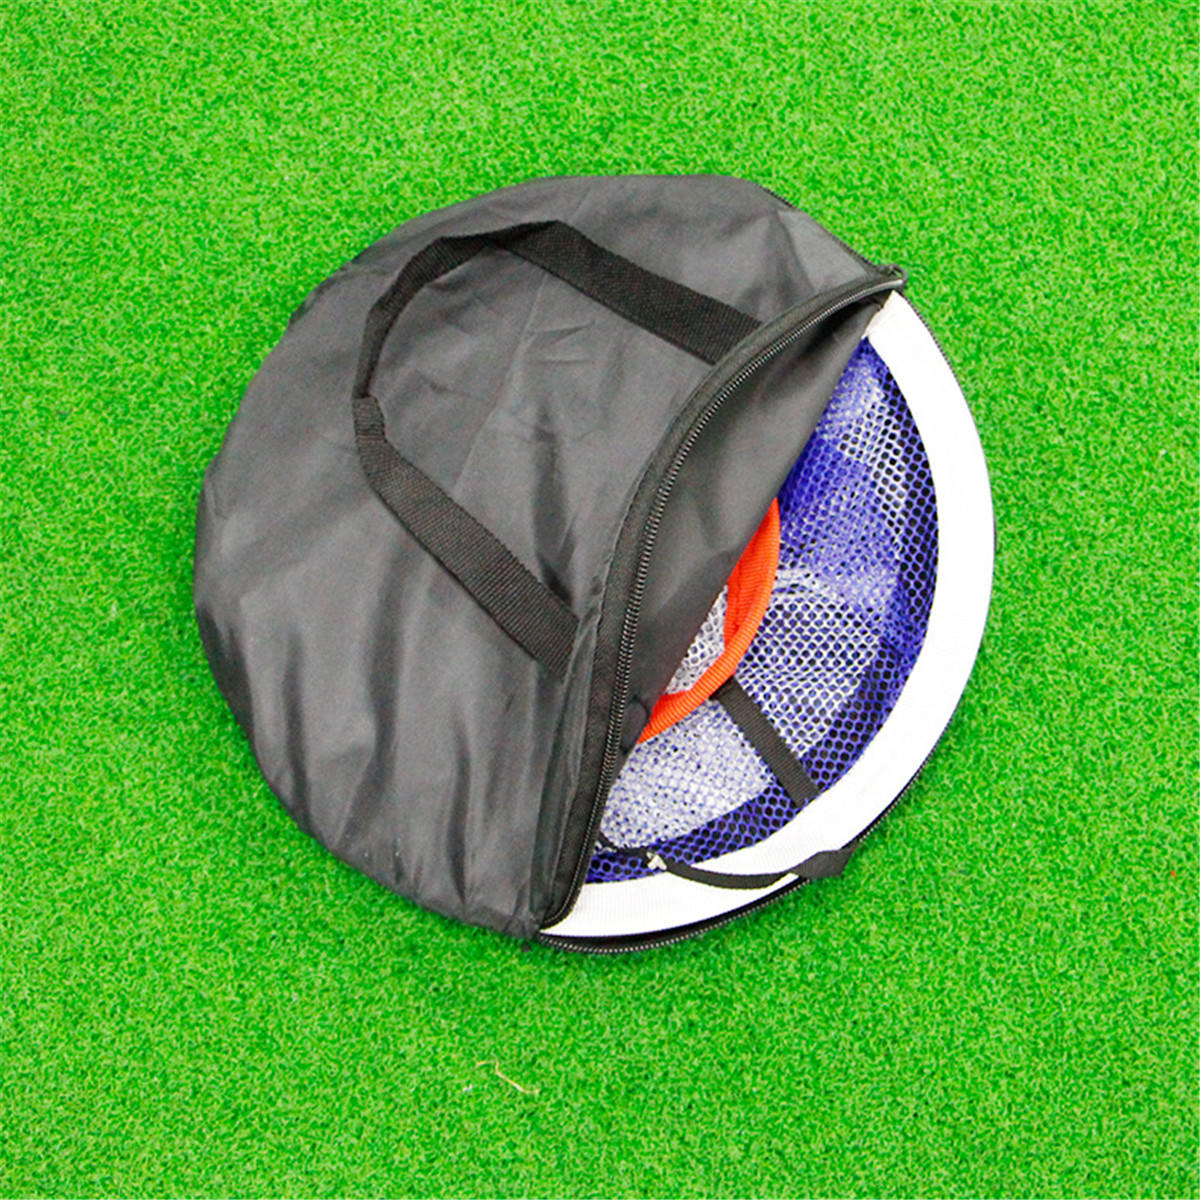 Golf Chipping Pitching Practice Net Hitting Cage Outils d'aide à la formation en plein air - 6